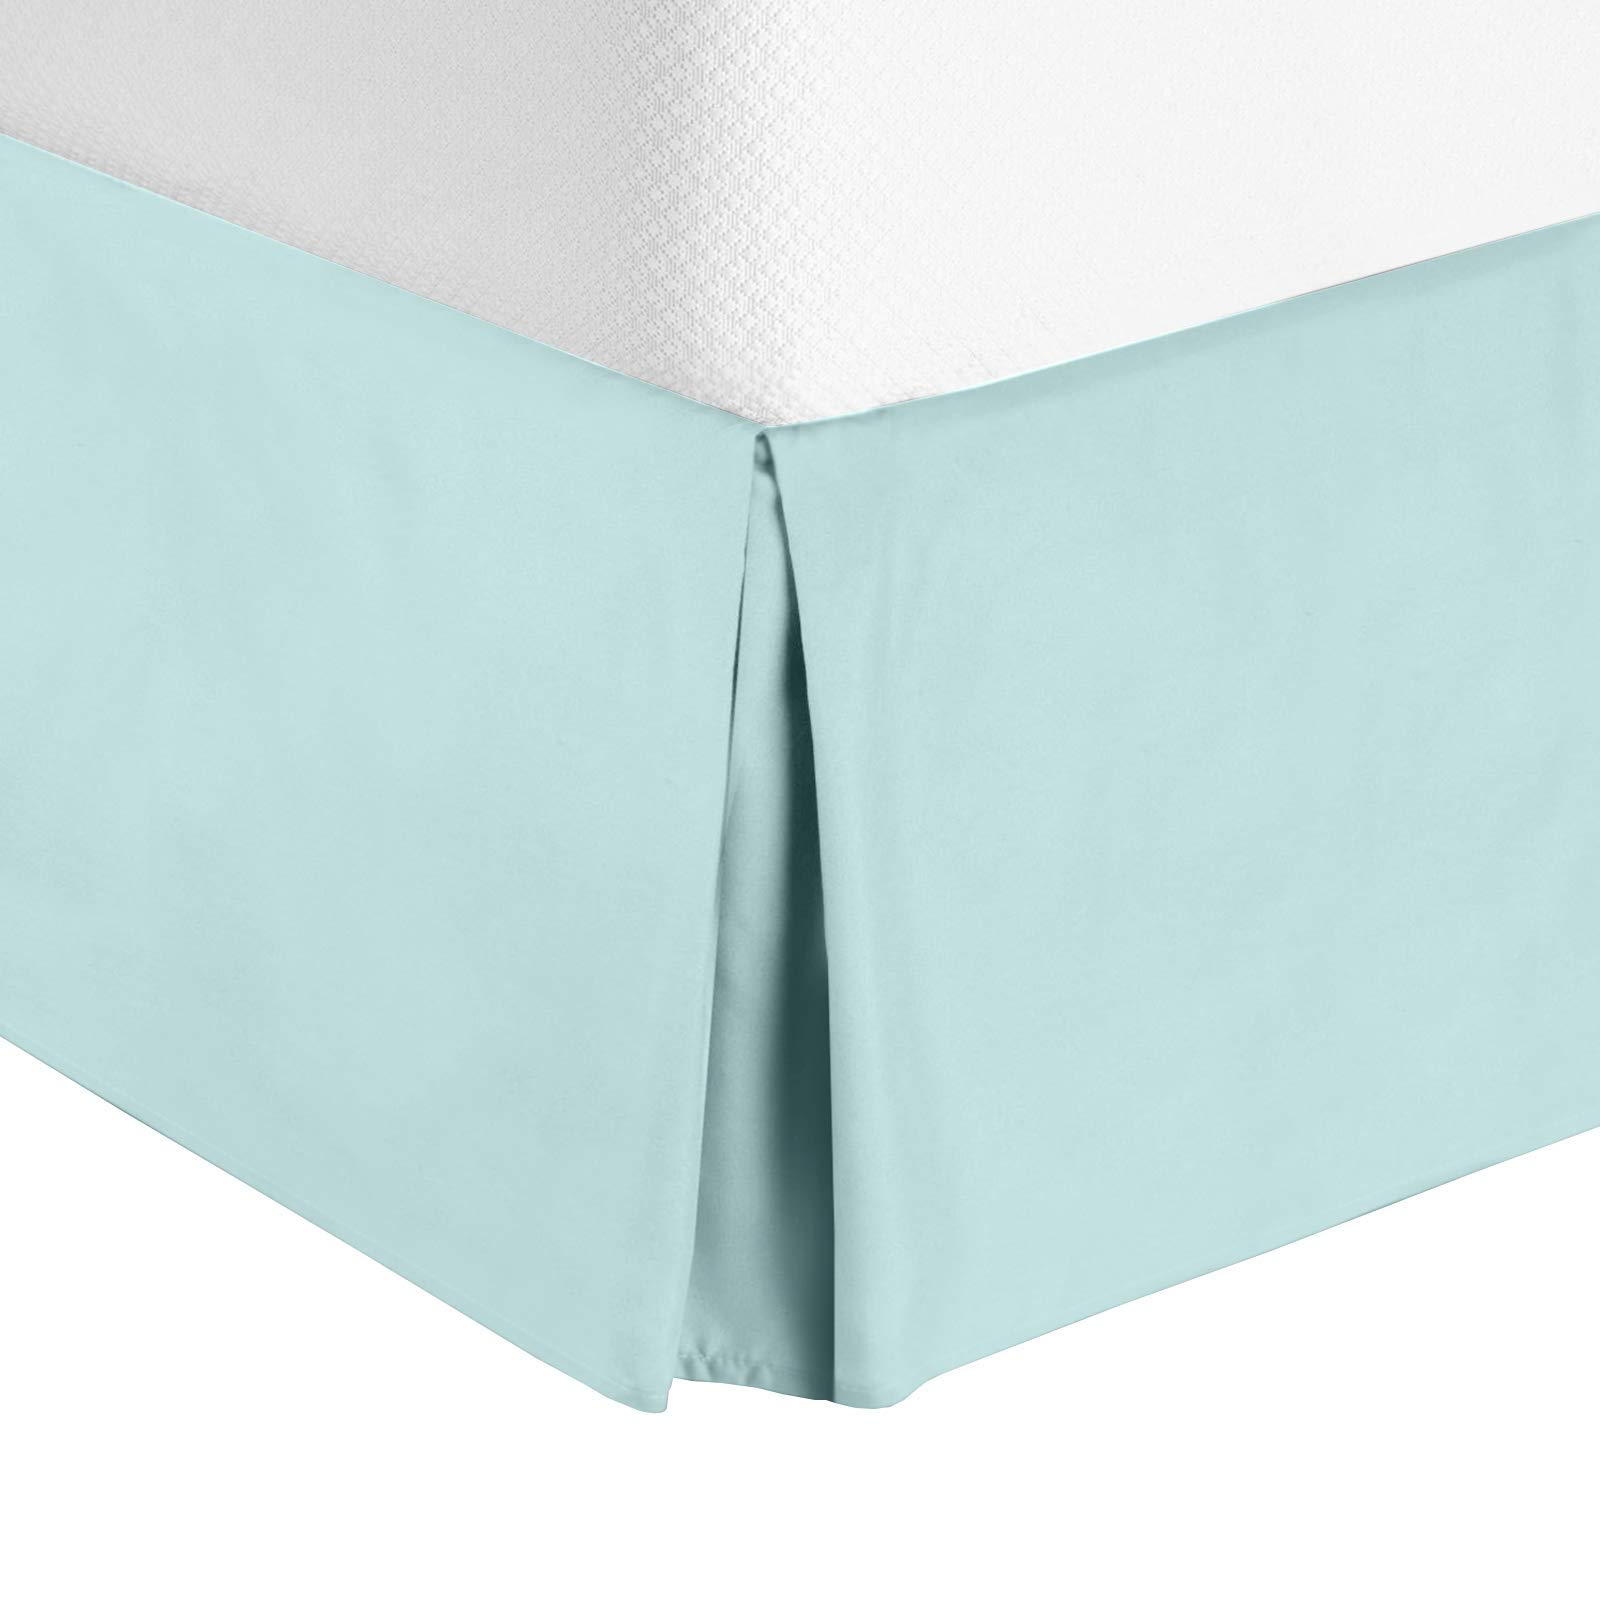 Nestl Bedding Bed Skirt - Soft Double Brushed Premium Microfiber Dust Ruffle - Luxury Pleated Dust Ruffle, Hotel Quality Sleek Modern Bed Skirt, Easy Fit with 14 in Tailored Drop, Full, Baby Blue